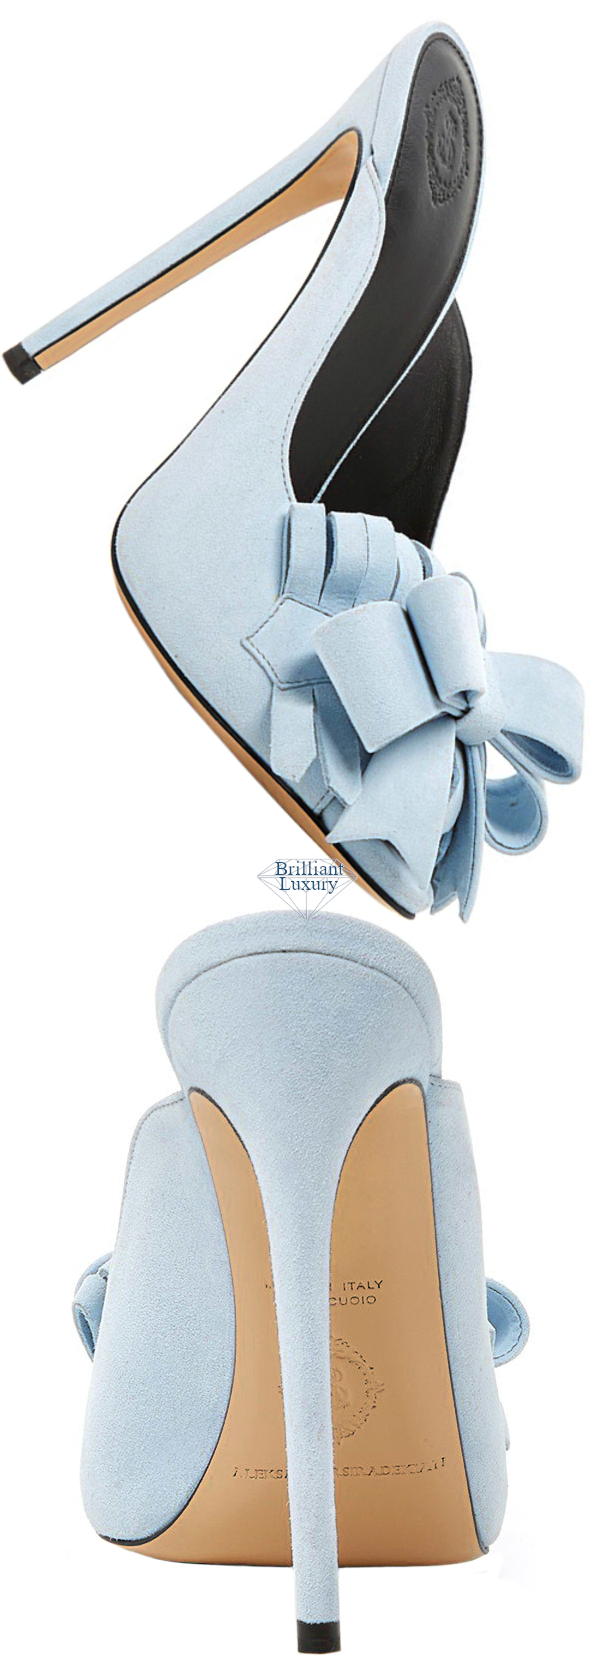 Aleksander Siradekian blue Claridge Muelle bow sandal #brilliantluxury